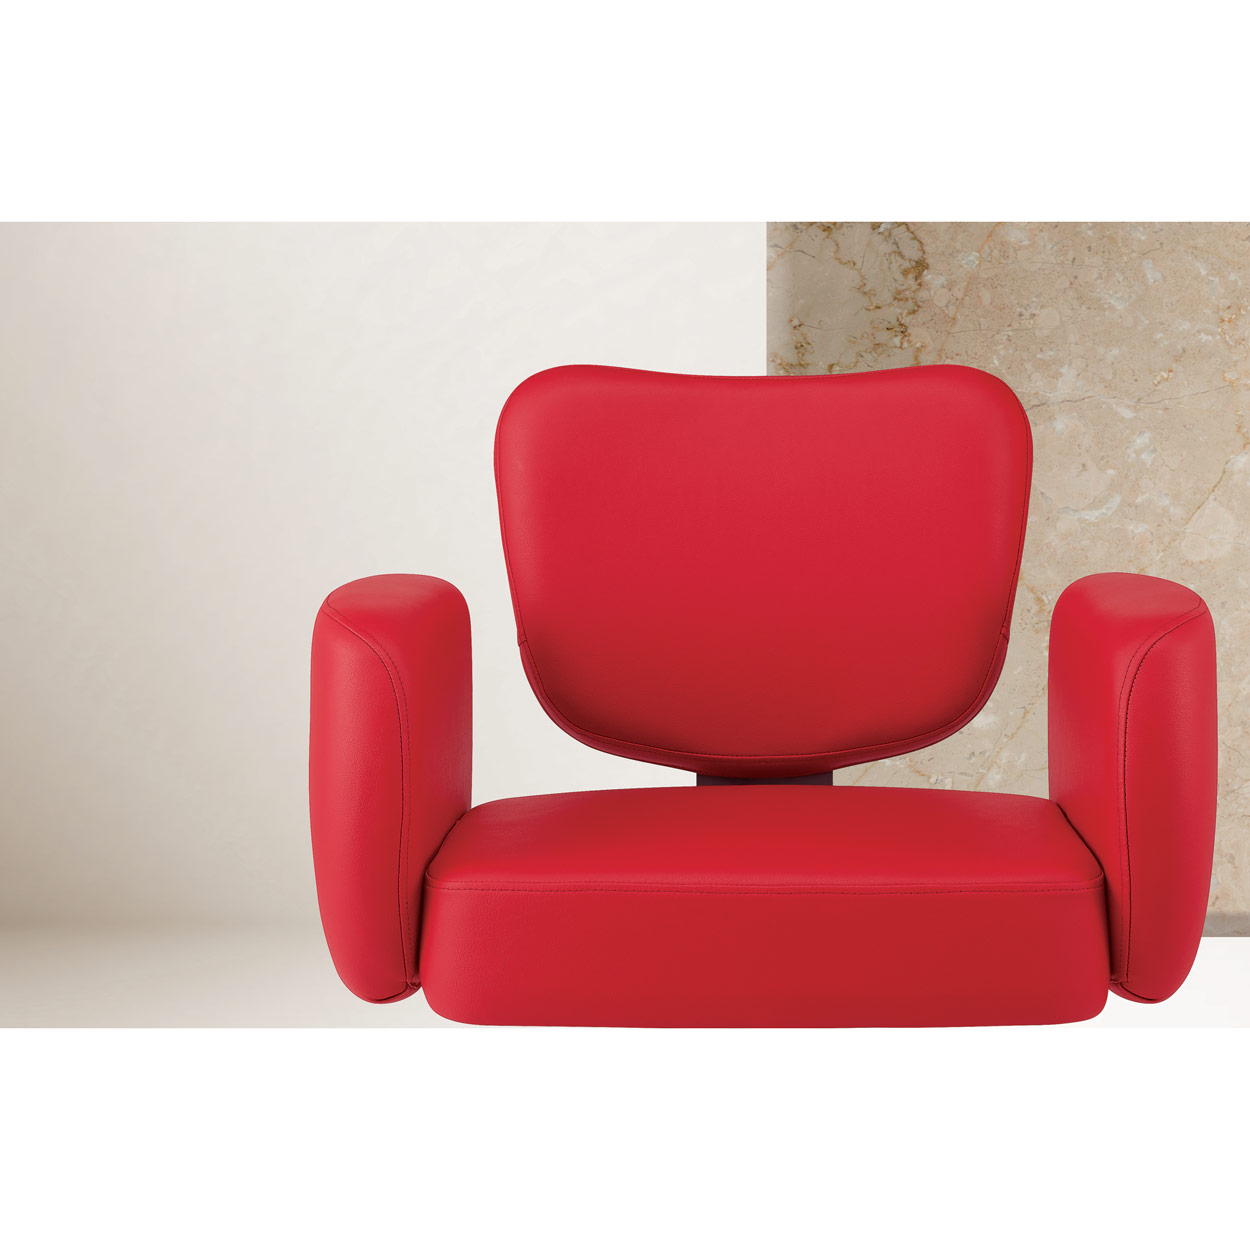 Takara Belmont Bellus Styling Chair alternative product image 1